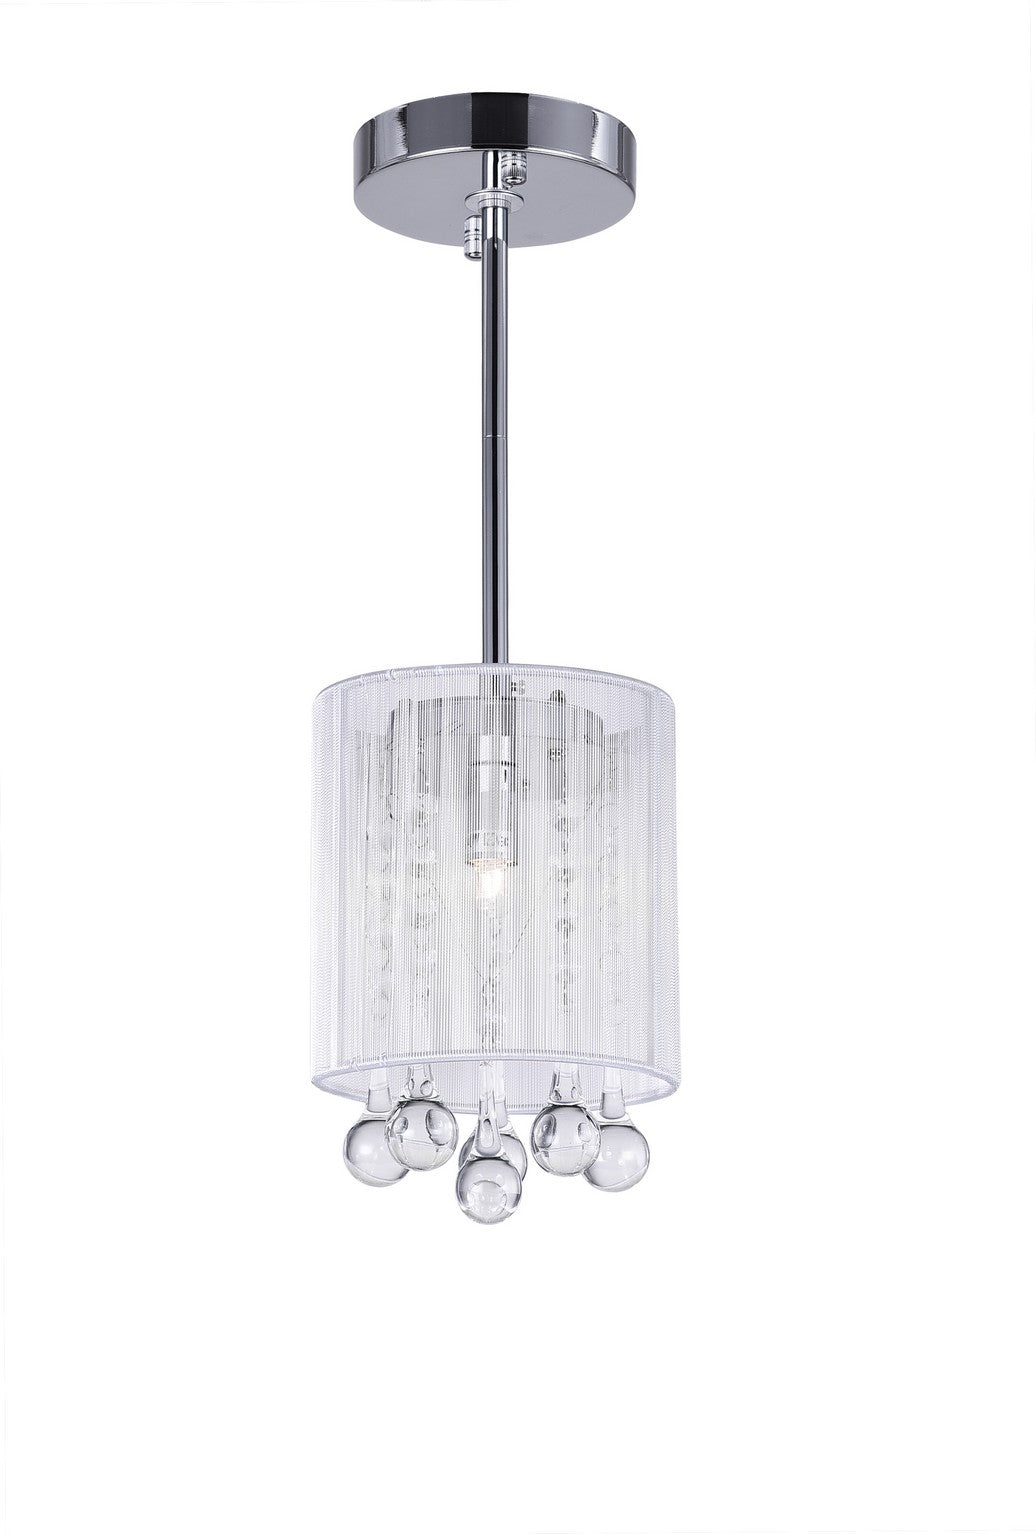 1 LIGHT DRUM SHADE MINI PENDANT WITH CHROME FINISH - Dream art Gallery